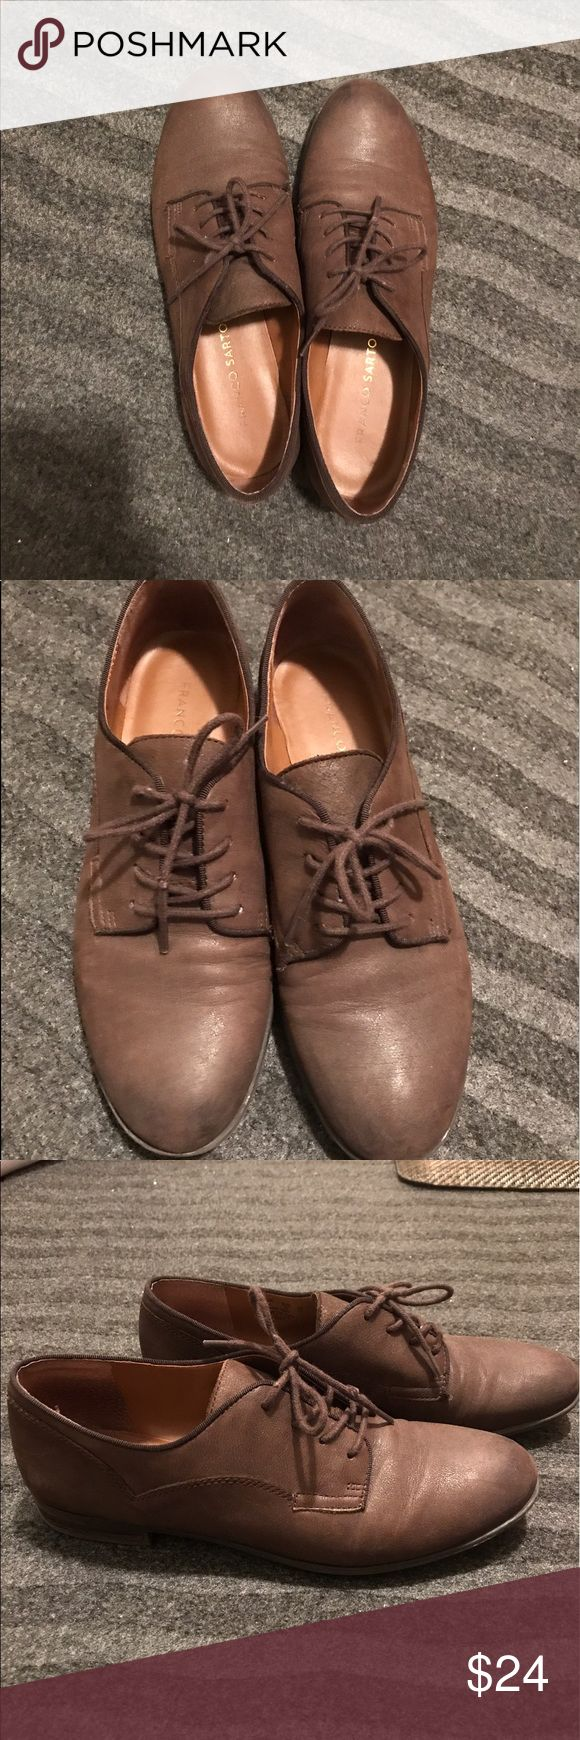 Brown Franco Sarto shoes Versatile chocolate brown Franco sarto shoes. Perfect for work or casual occasion. Very comfortable and in great condition Franco Sarto Shoes Flats & Loafers